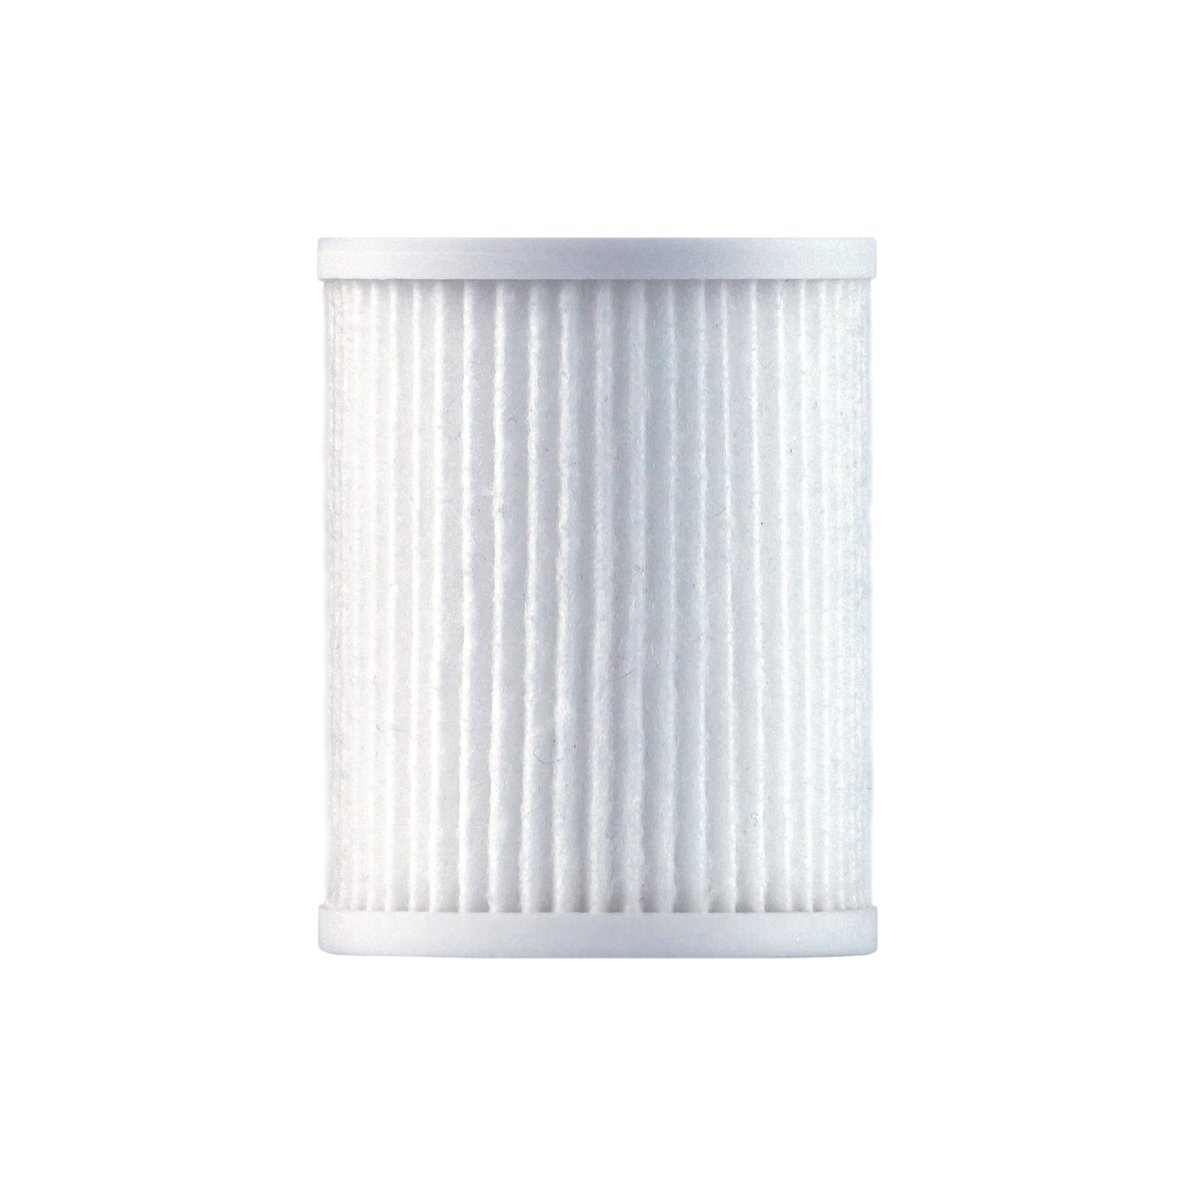 Wynd Air Purifier Replacement Filter